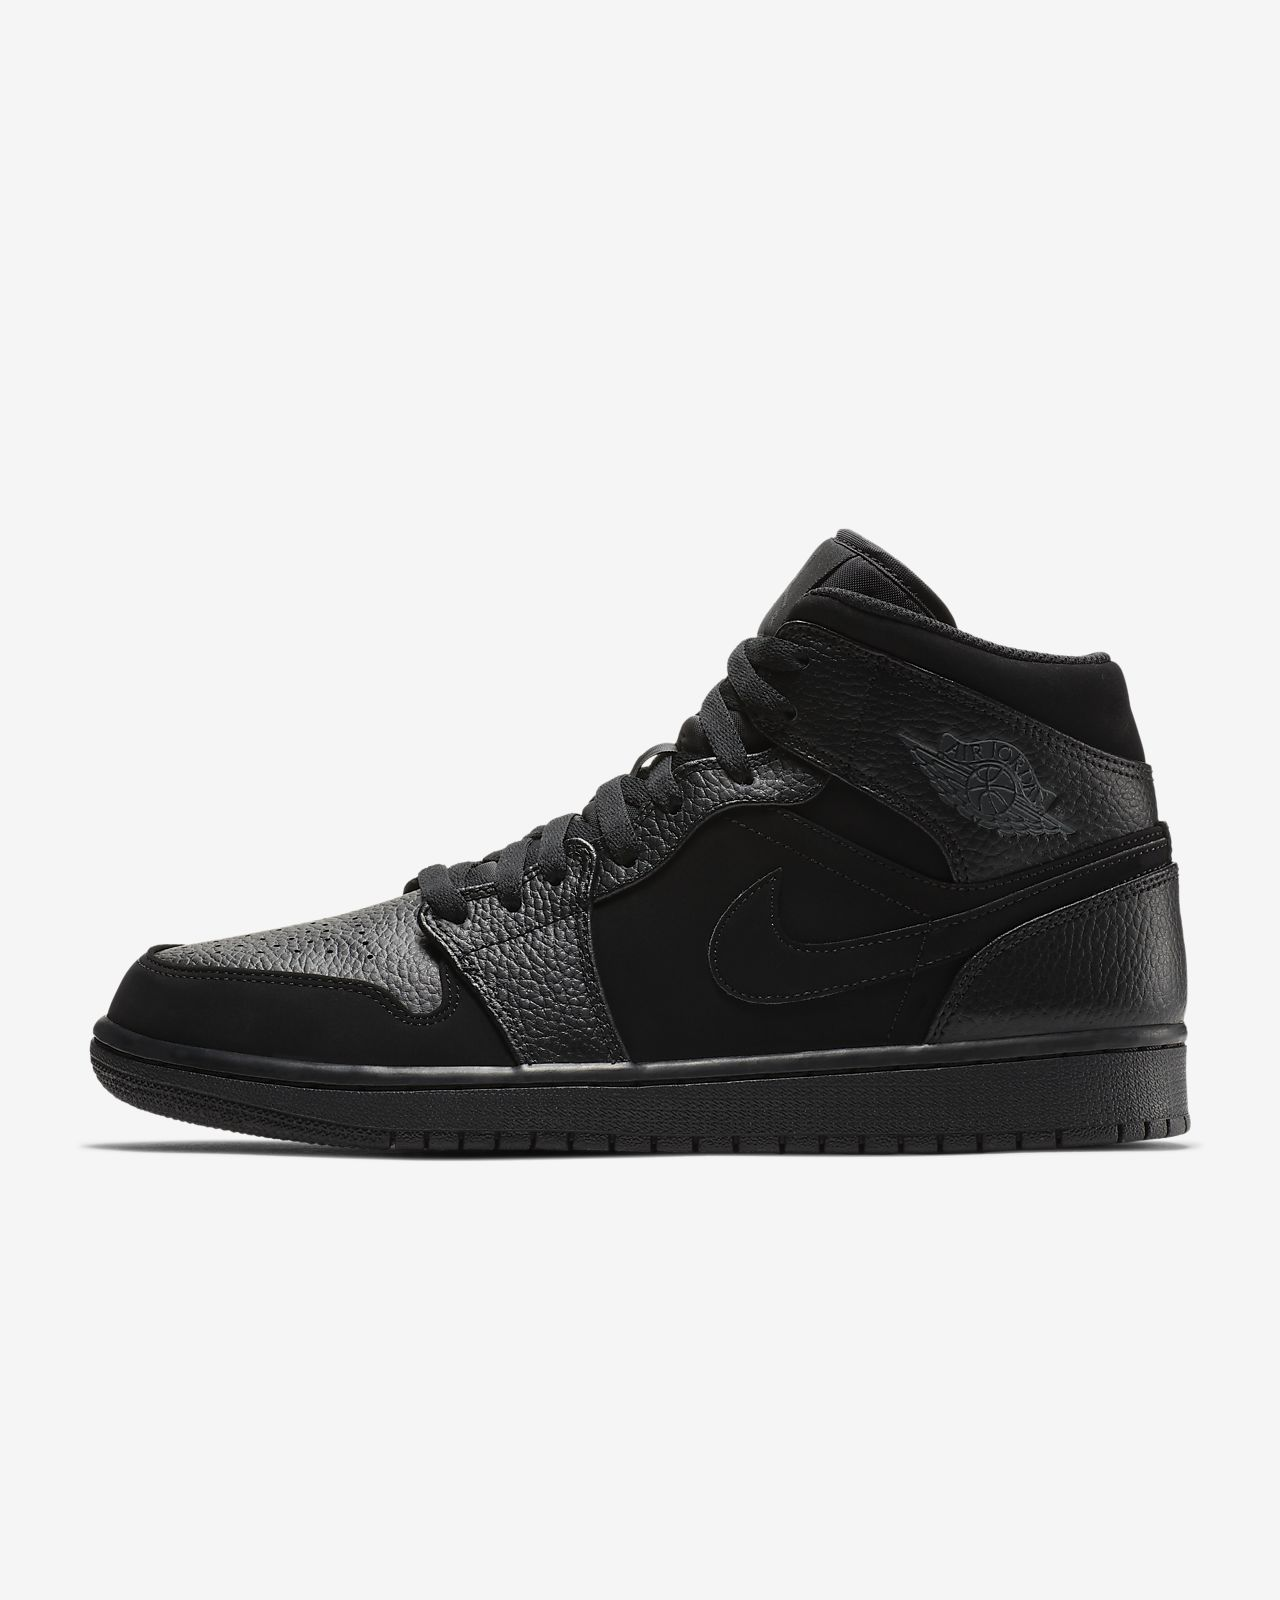 innovative design 5af3c 344ee Air Jordan 1 Mid Men's Shoe. Nike.com NL